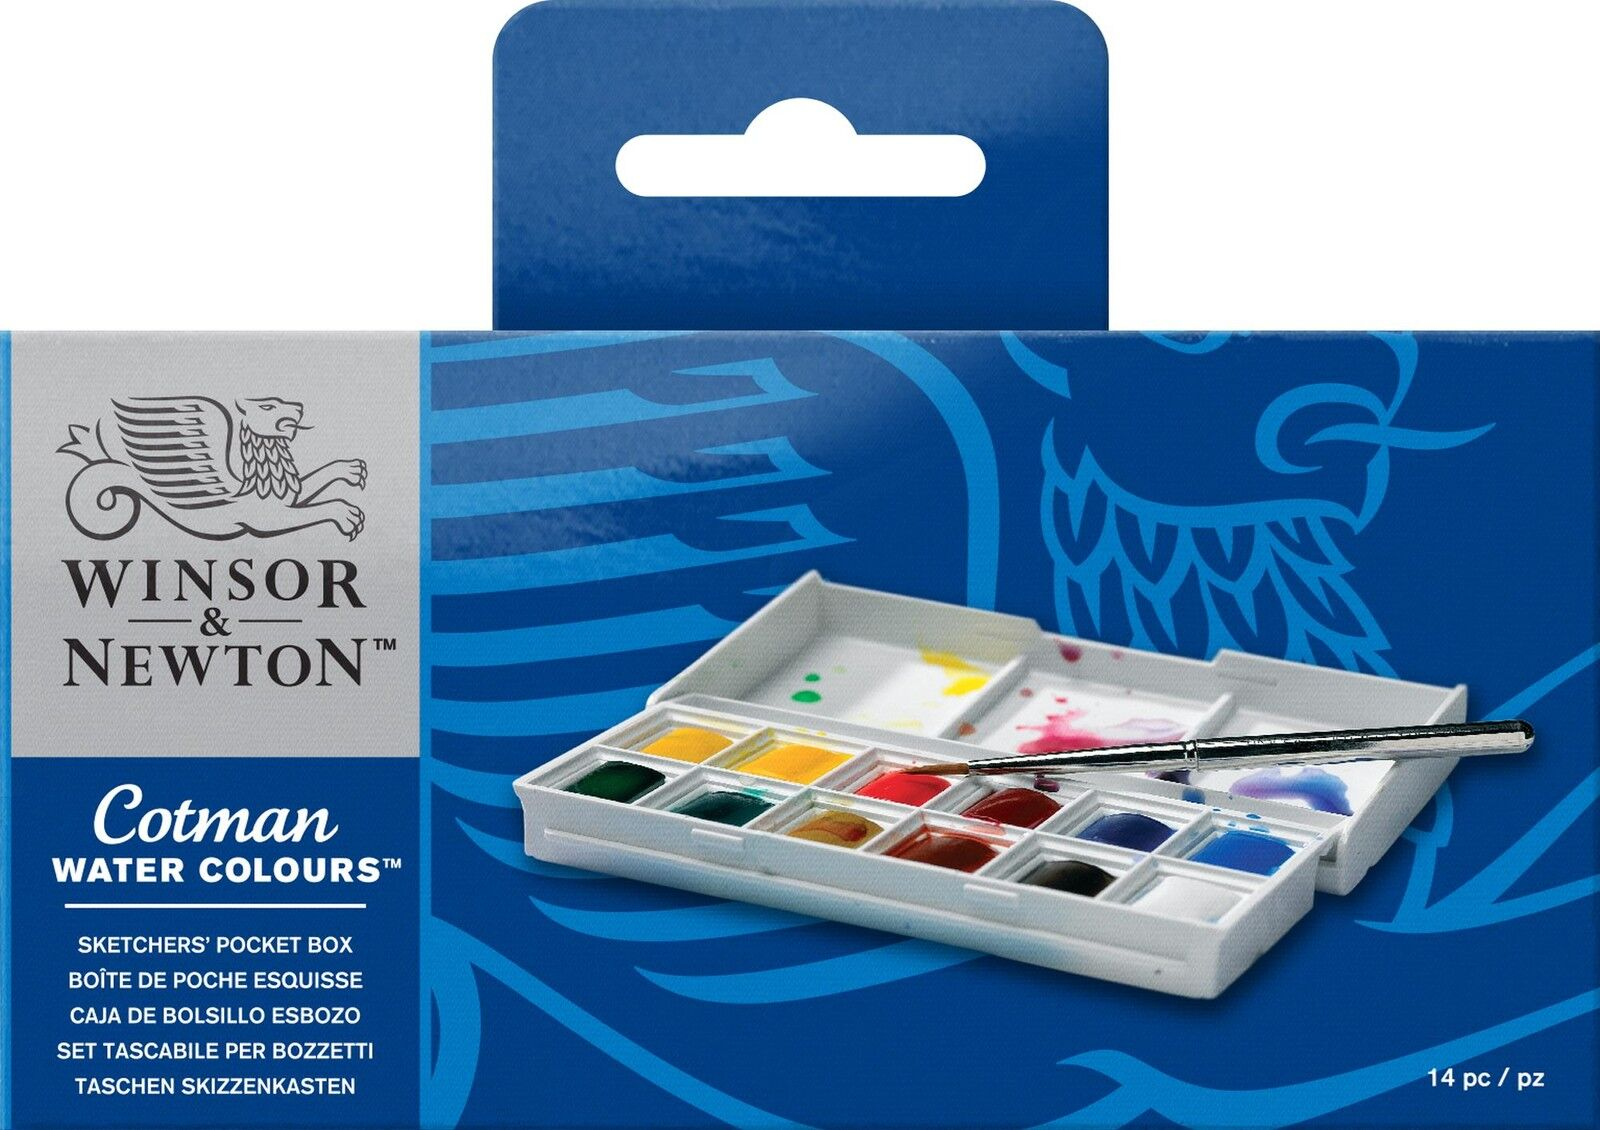 Winsor & Newton Cotman Watercolour Set Sketchers Pocket Box 12 Half Pans